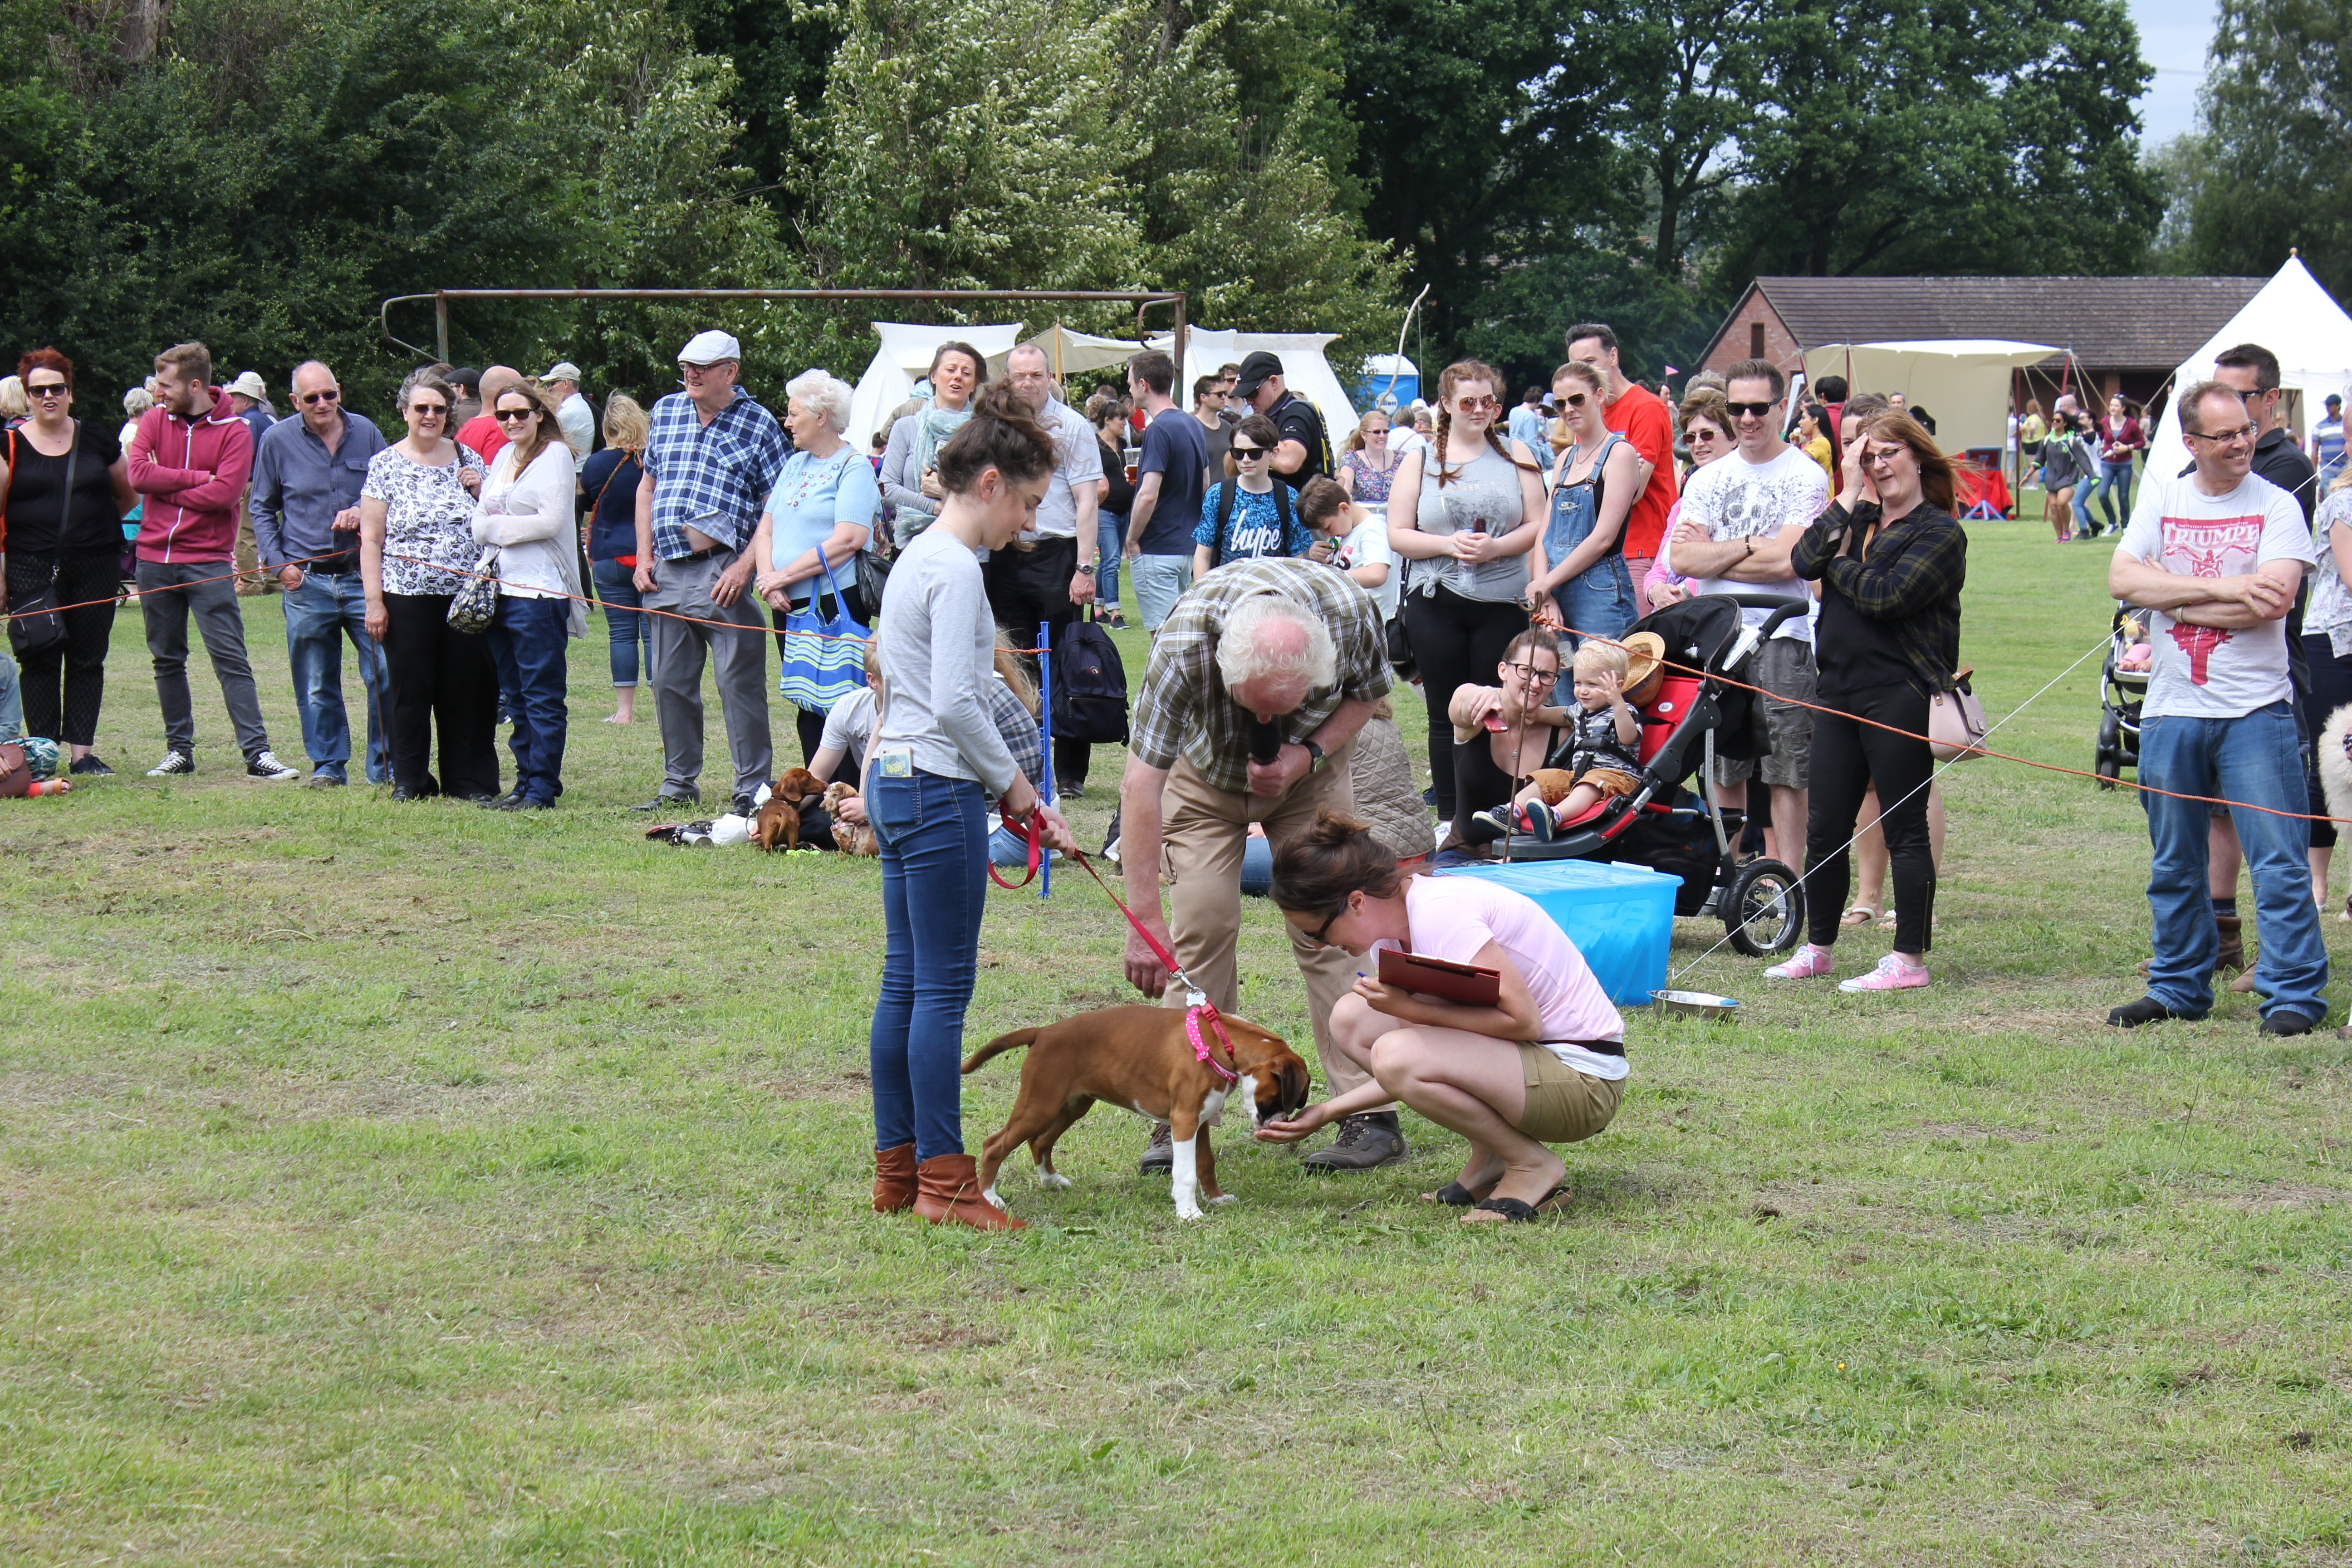 Elin judging at Sherfield dog show